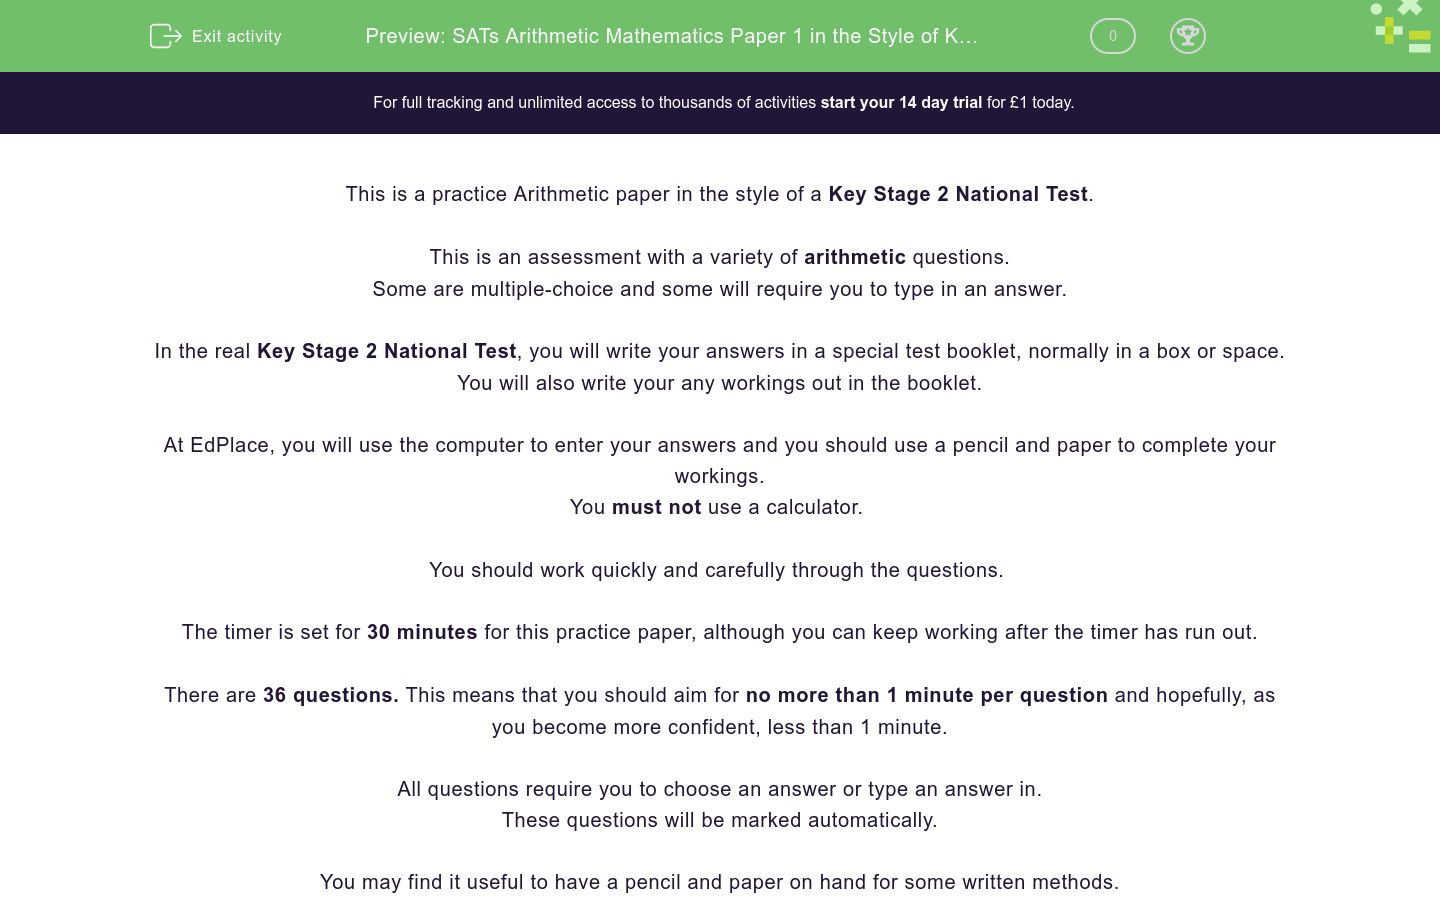 'SATs Arithmetic Mathematics Paper 1 in the Style of Key Stage 2 National Tests (Practice 3)' worksheet